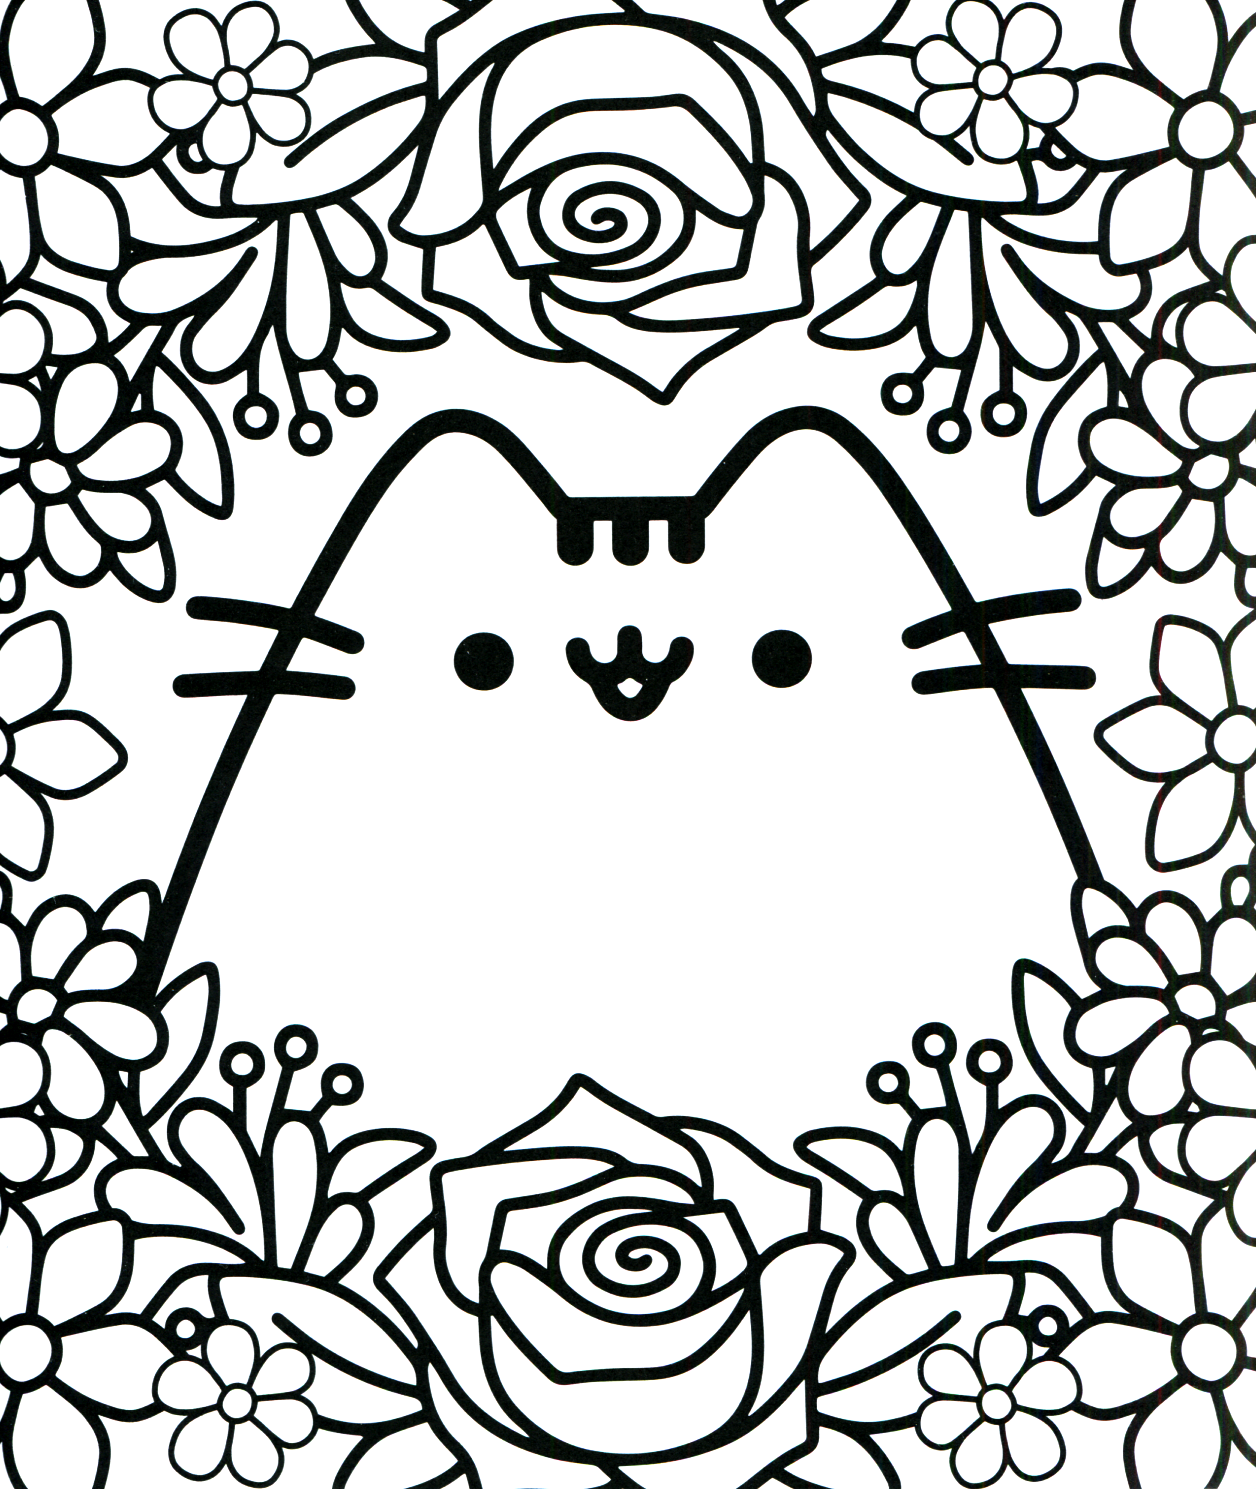 Pusheen Coloring Book Pusheen Pusheen The Cat Pusheen Coloring Pages Cute Coloring Pages Cat Coloring Page